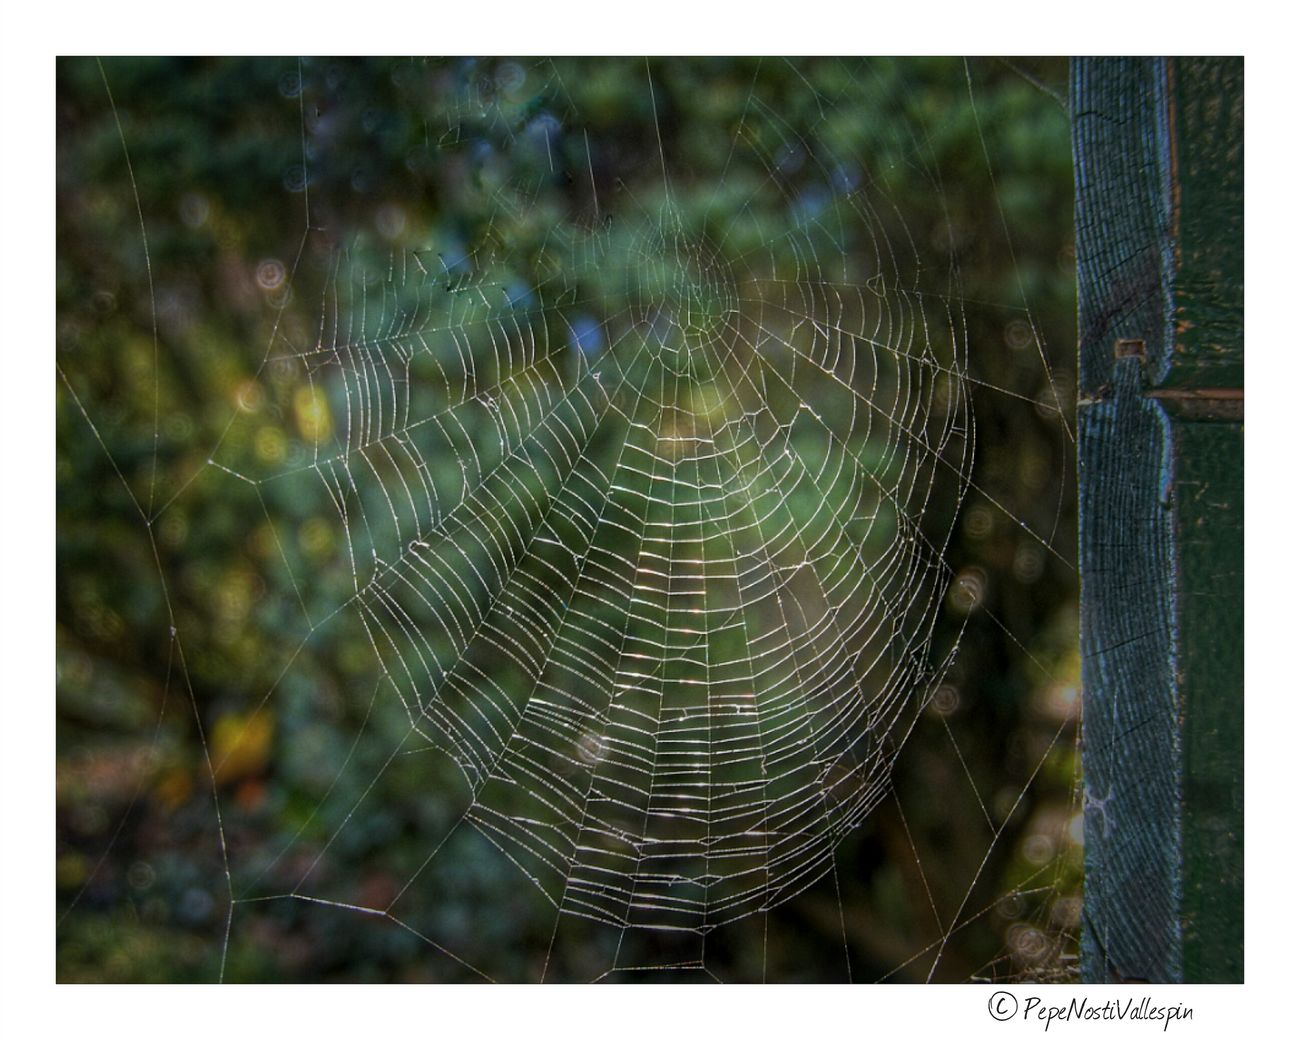 Spidersweb Naturephotography Asturiasparaisonatural